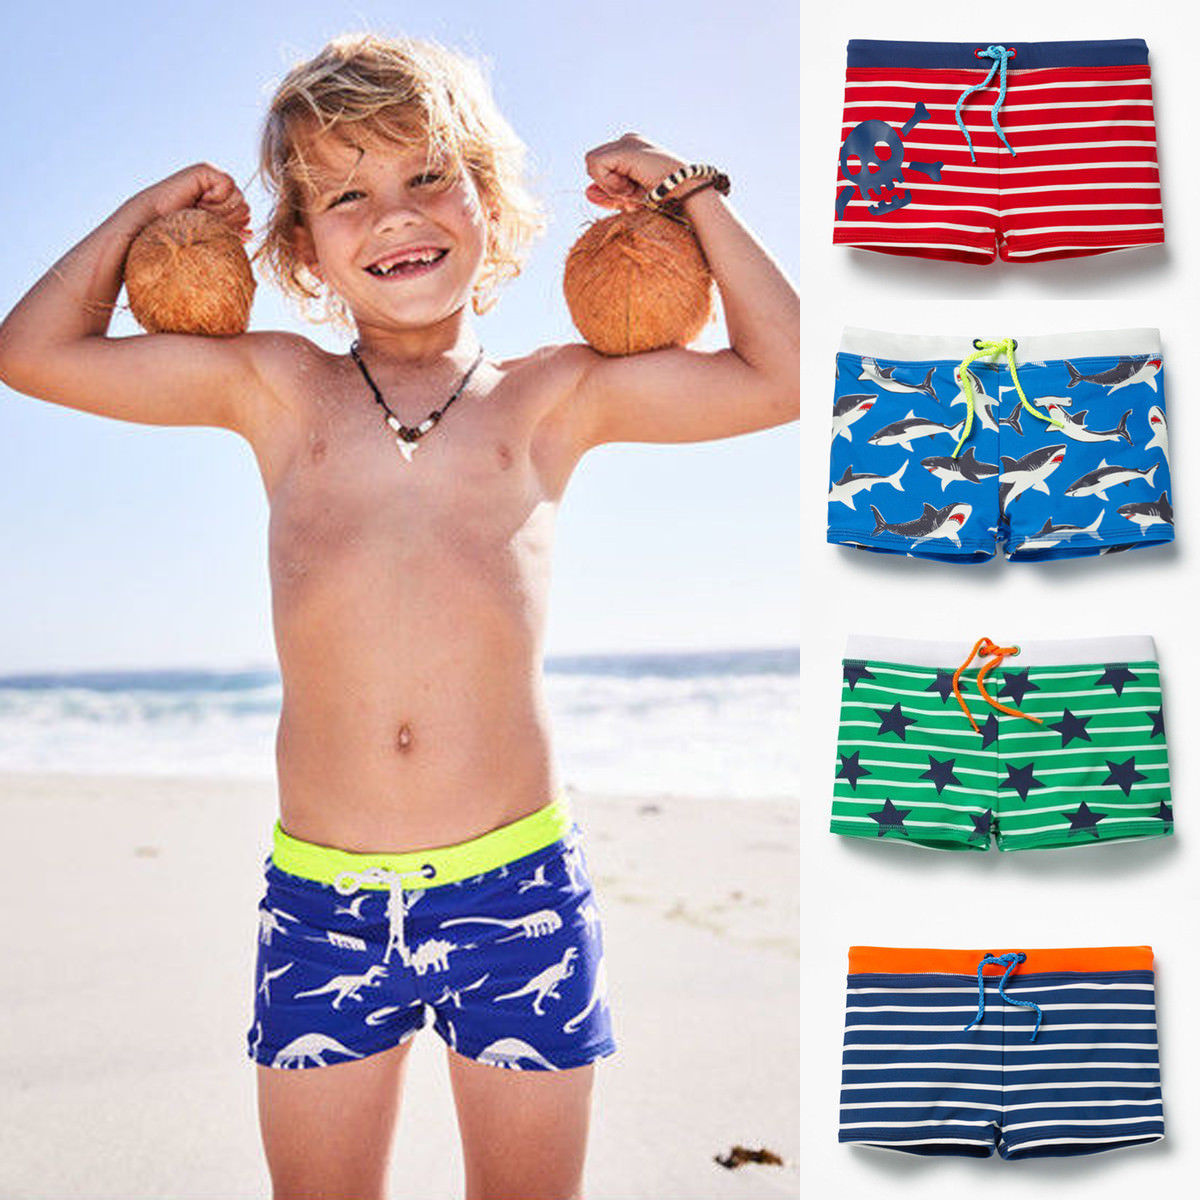 Meihuida 2019 One Piece Toddler Boy Kid Swimwear Summer Bathing Suit Beach